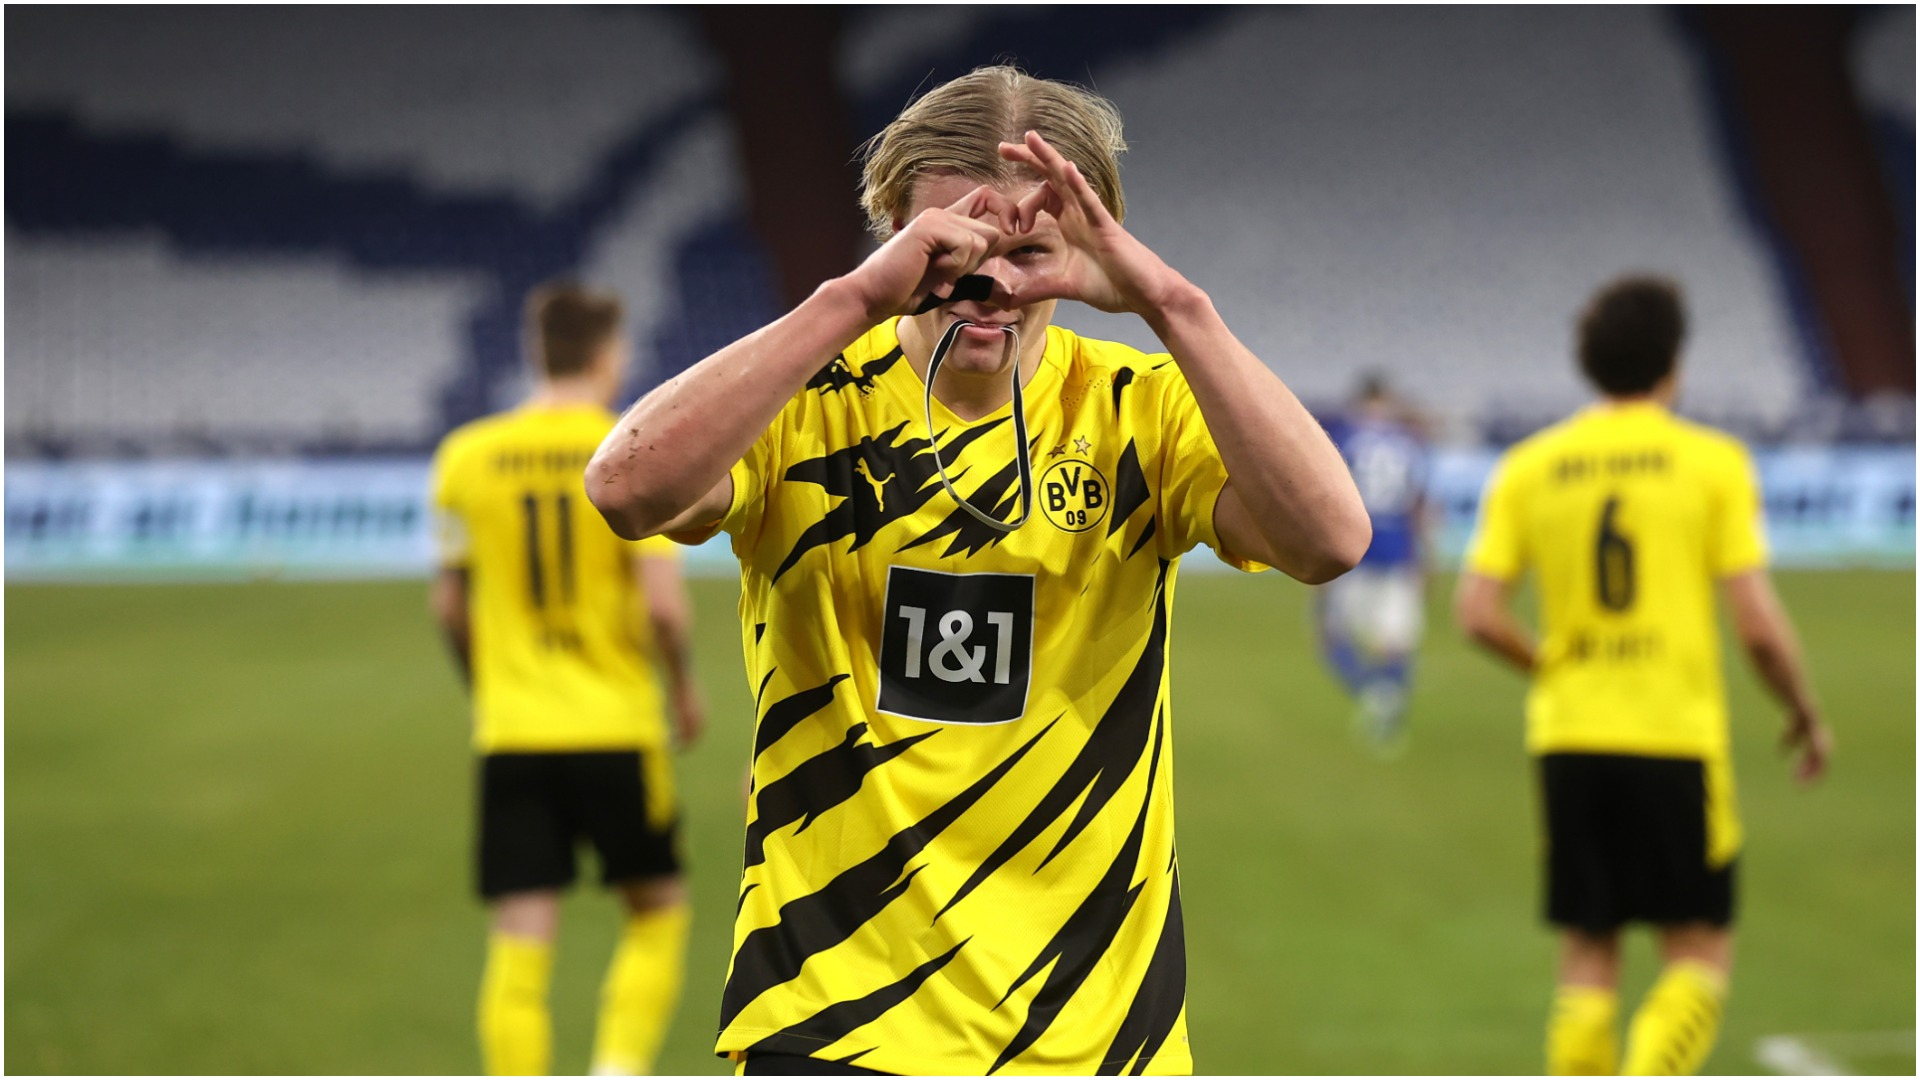 Plenty may want Erling Haaland, but his agent insists only a select few can provide the right platform after Borussia Dortmund.